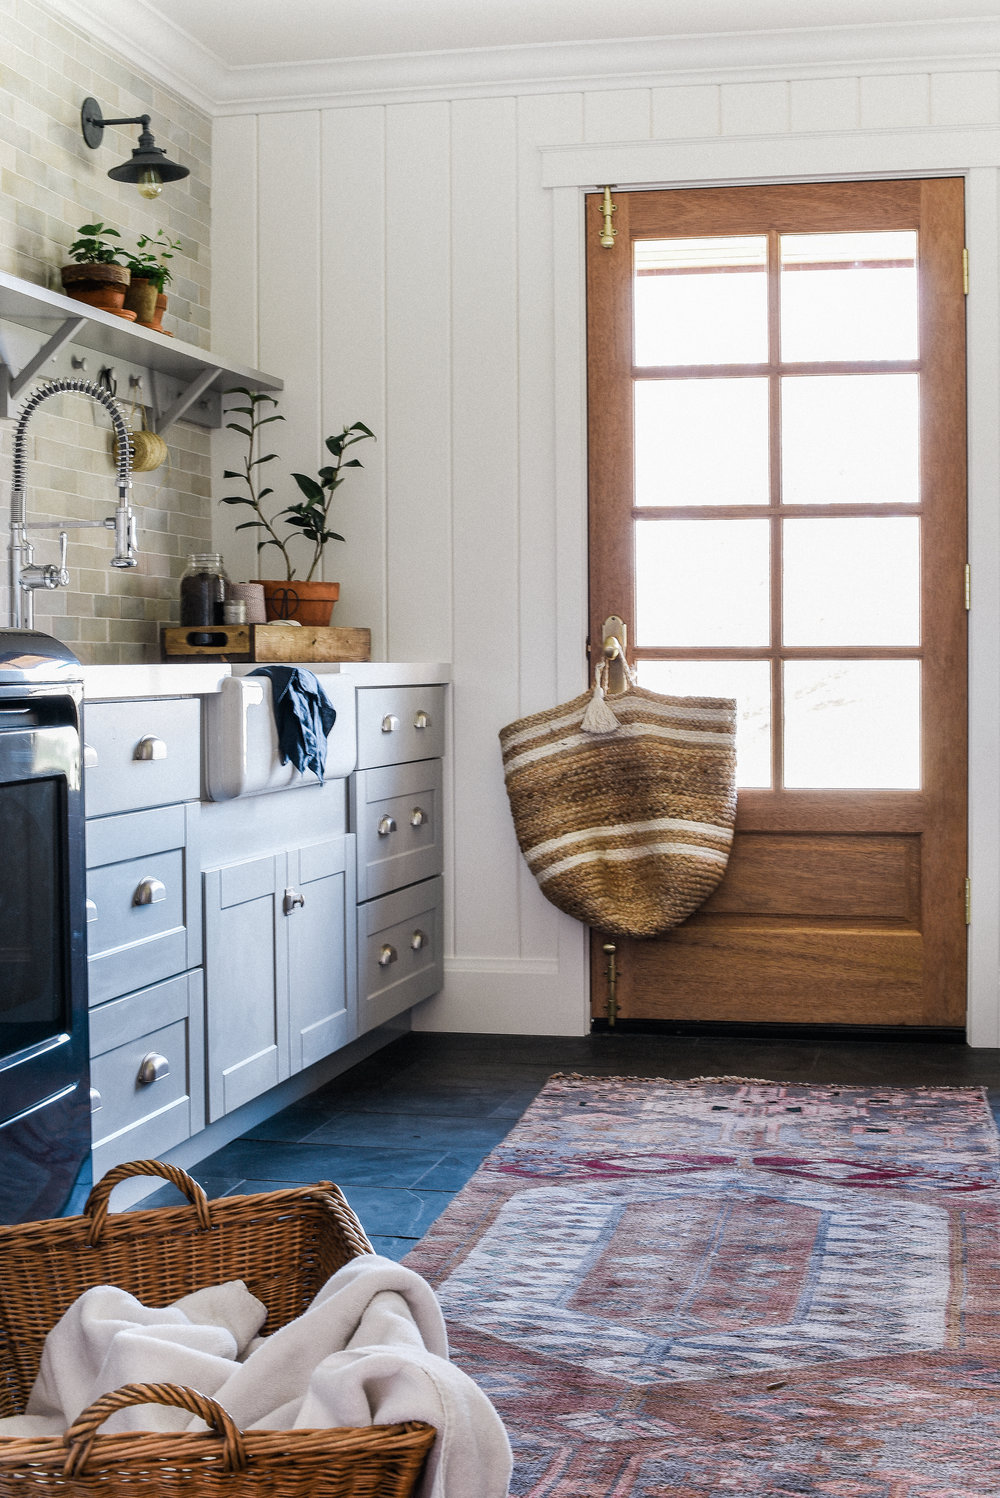 See our newly remodeled laundry room! -